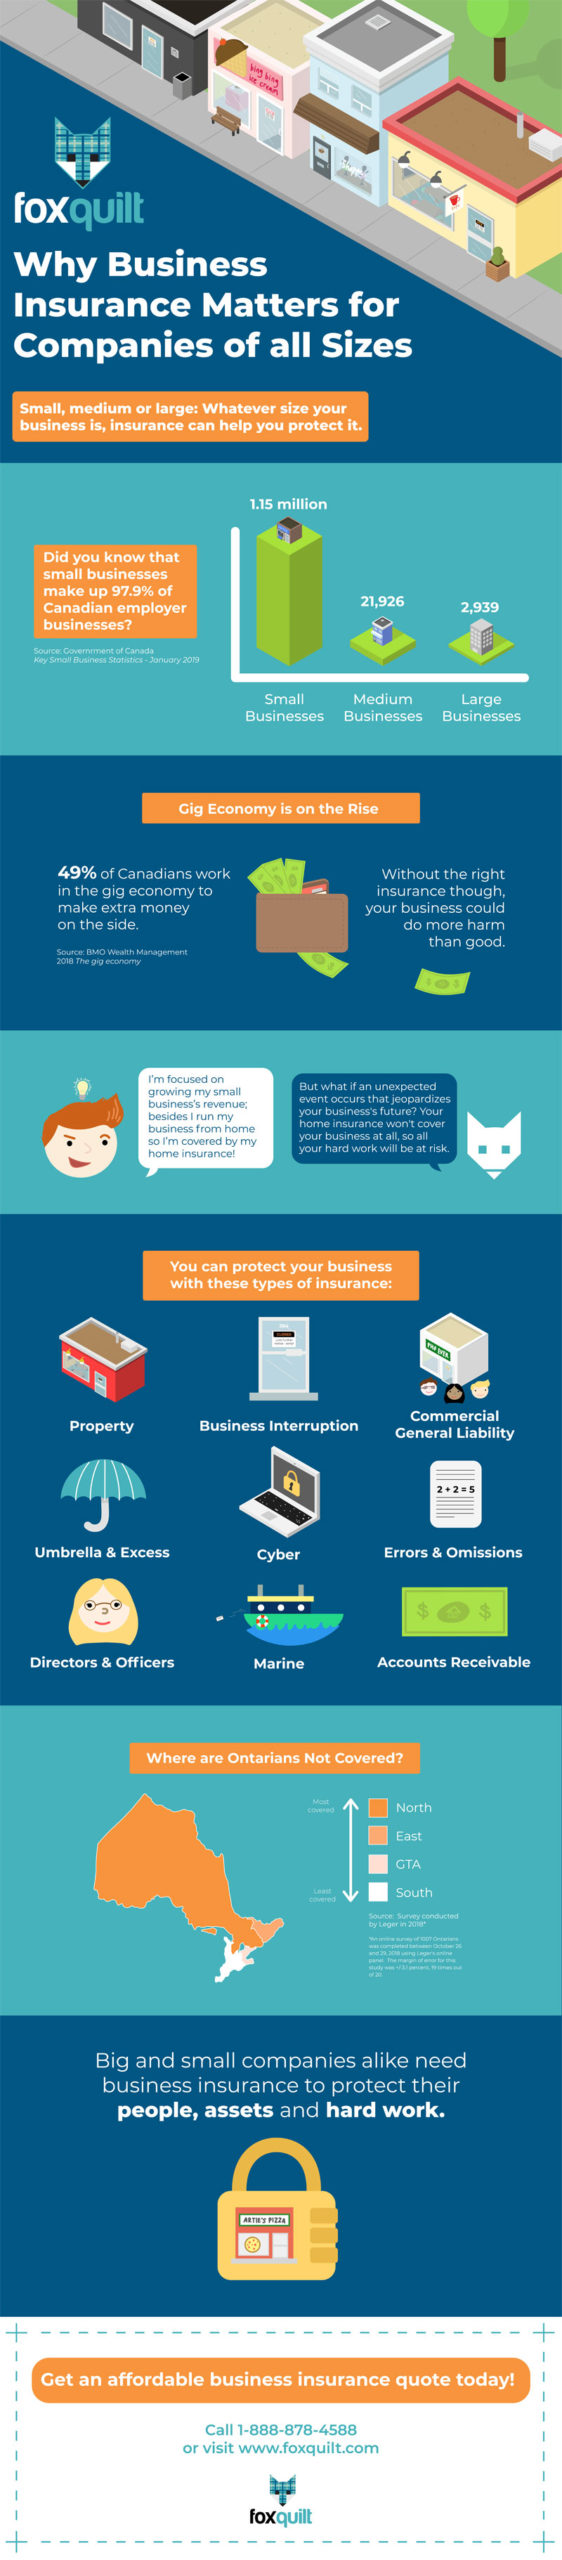 why business insurance matters for companies of all sizes infographic